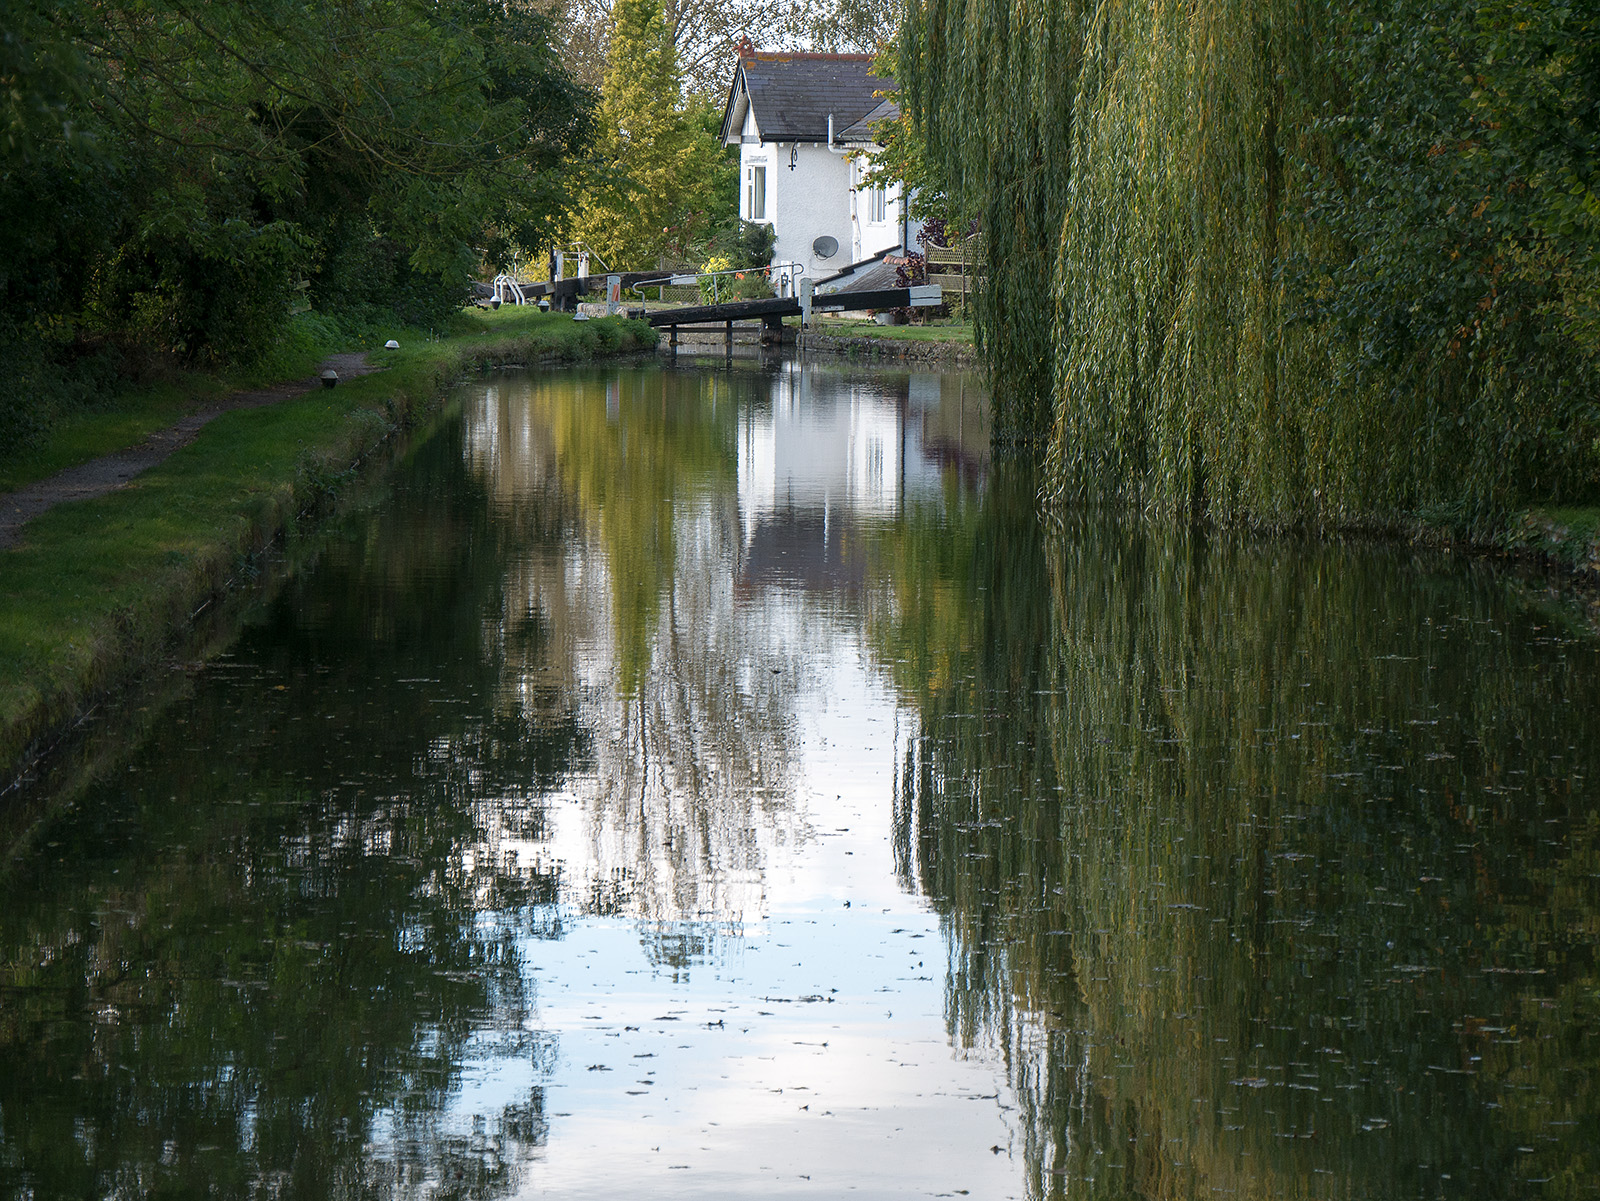 Reflections on the still water on the approach to a lock with the keeper's cottage nearby.